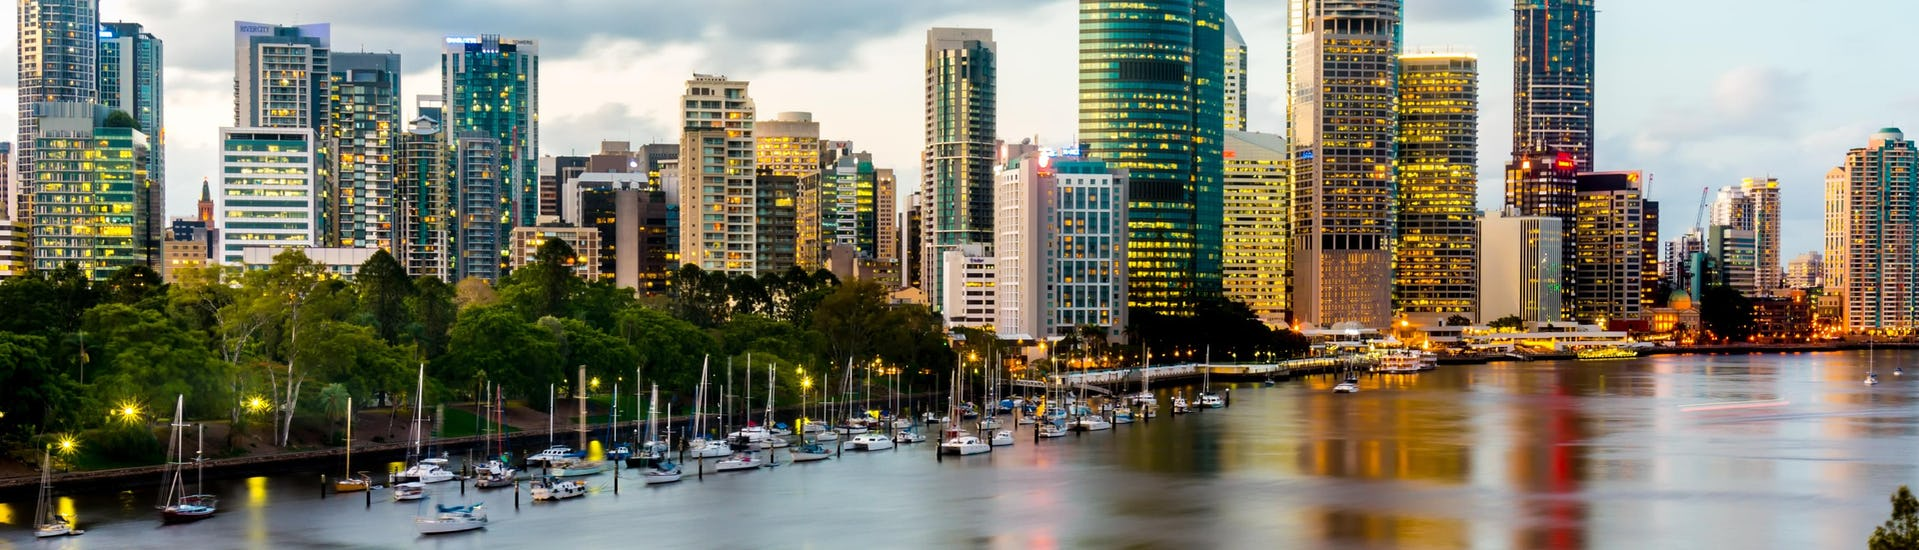 An image of Brisbane River with numerous skyscrapers lined up along its shores, something that can be seen up close when kayaking in Brisbane.